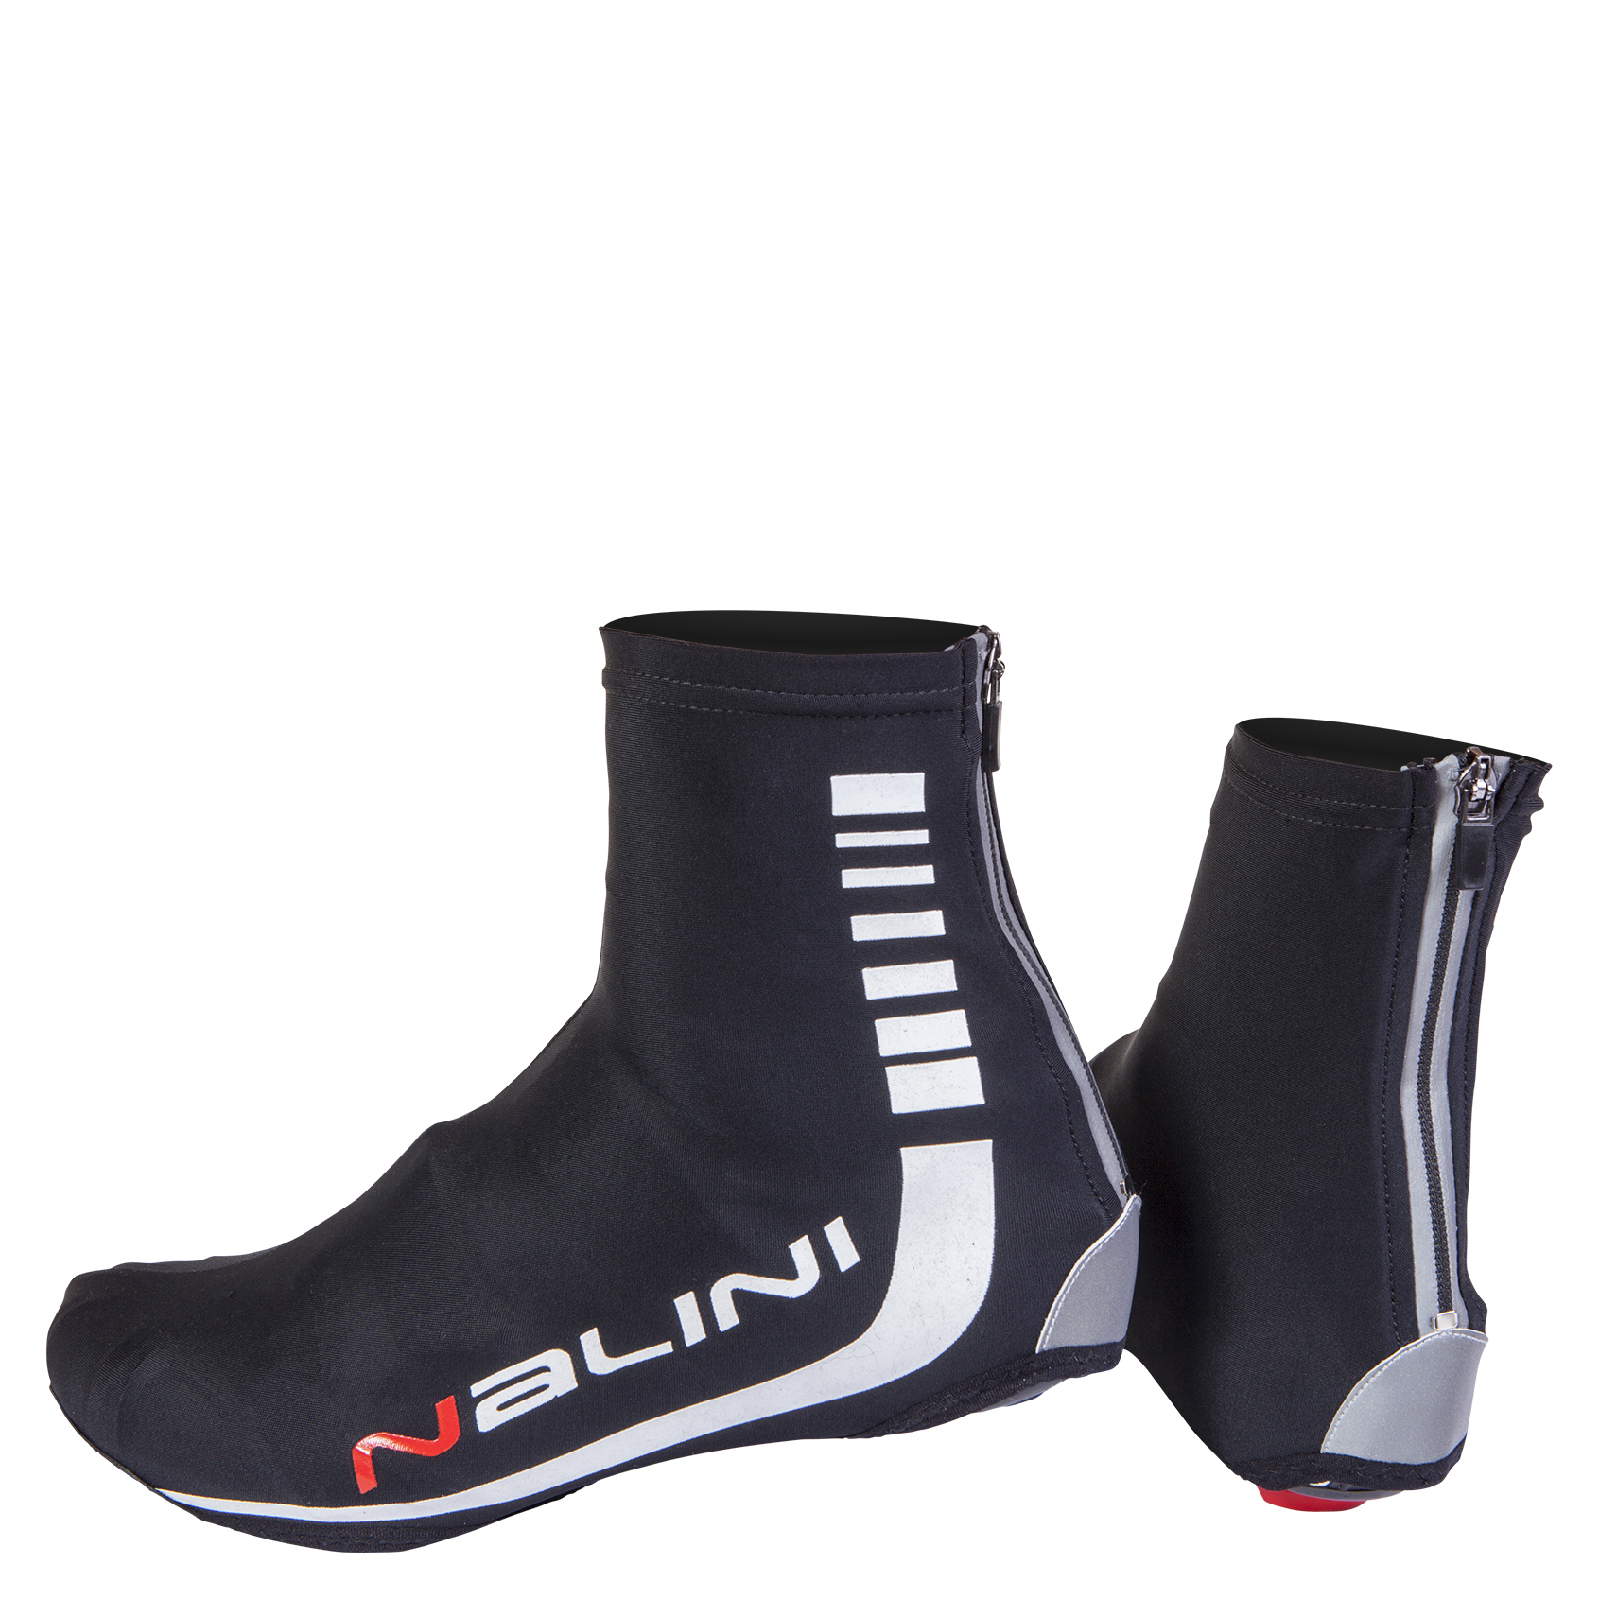 Nalini RED Overshoes - Black